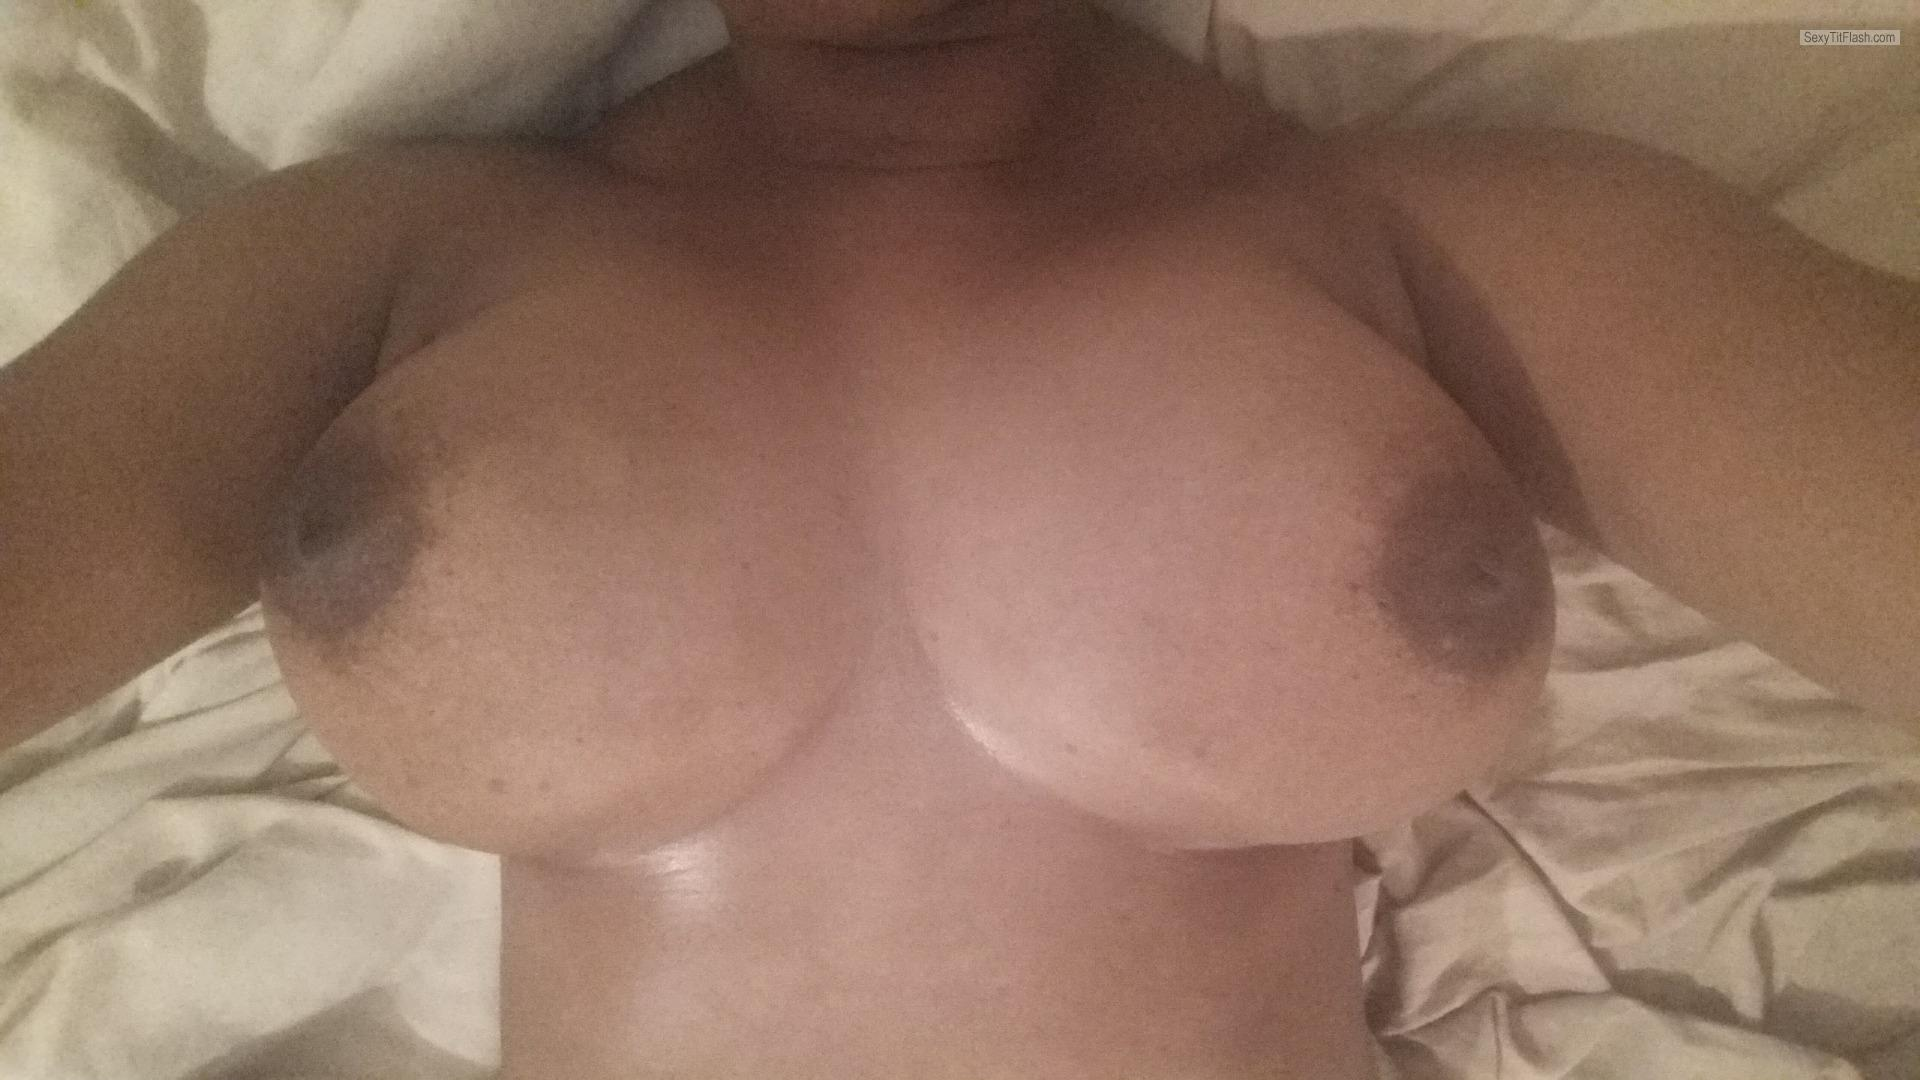 Tit Flash: My Very Small Tits - Topless Big Boobs from United Kingdom